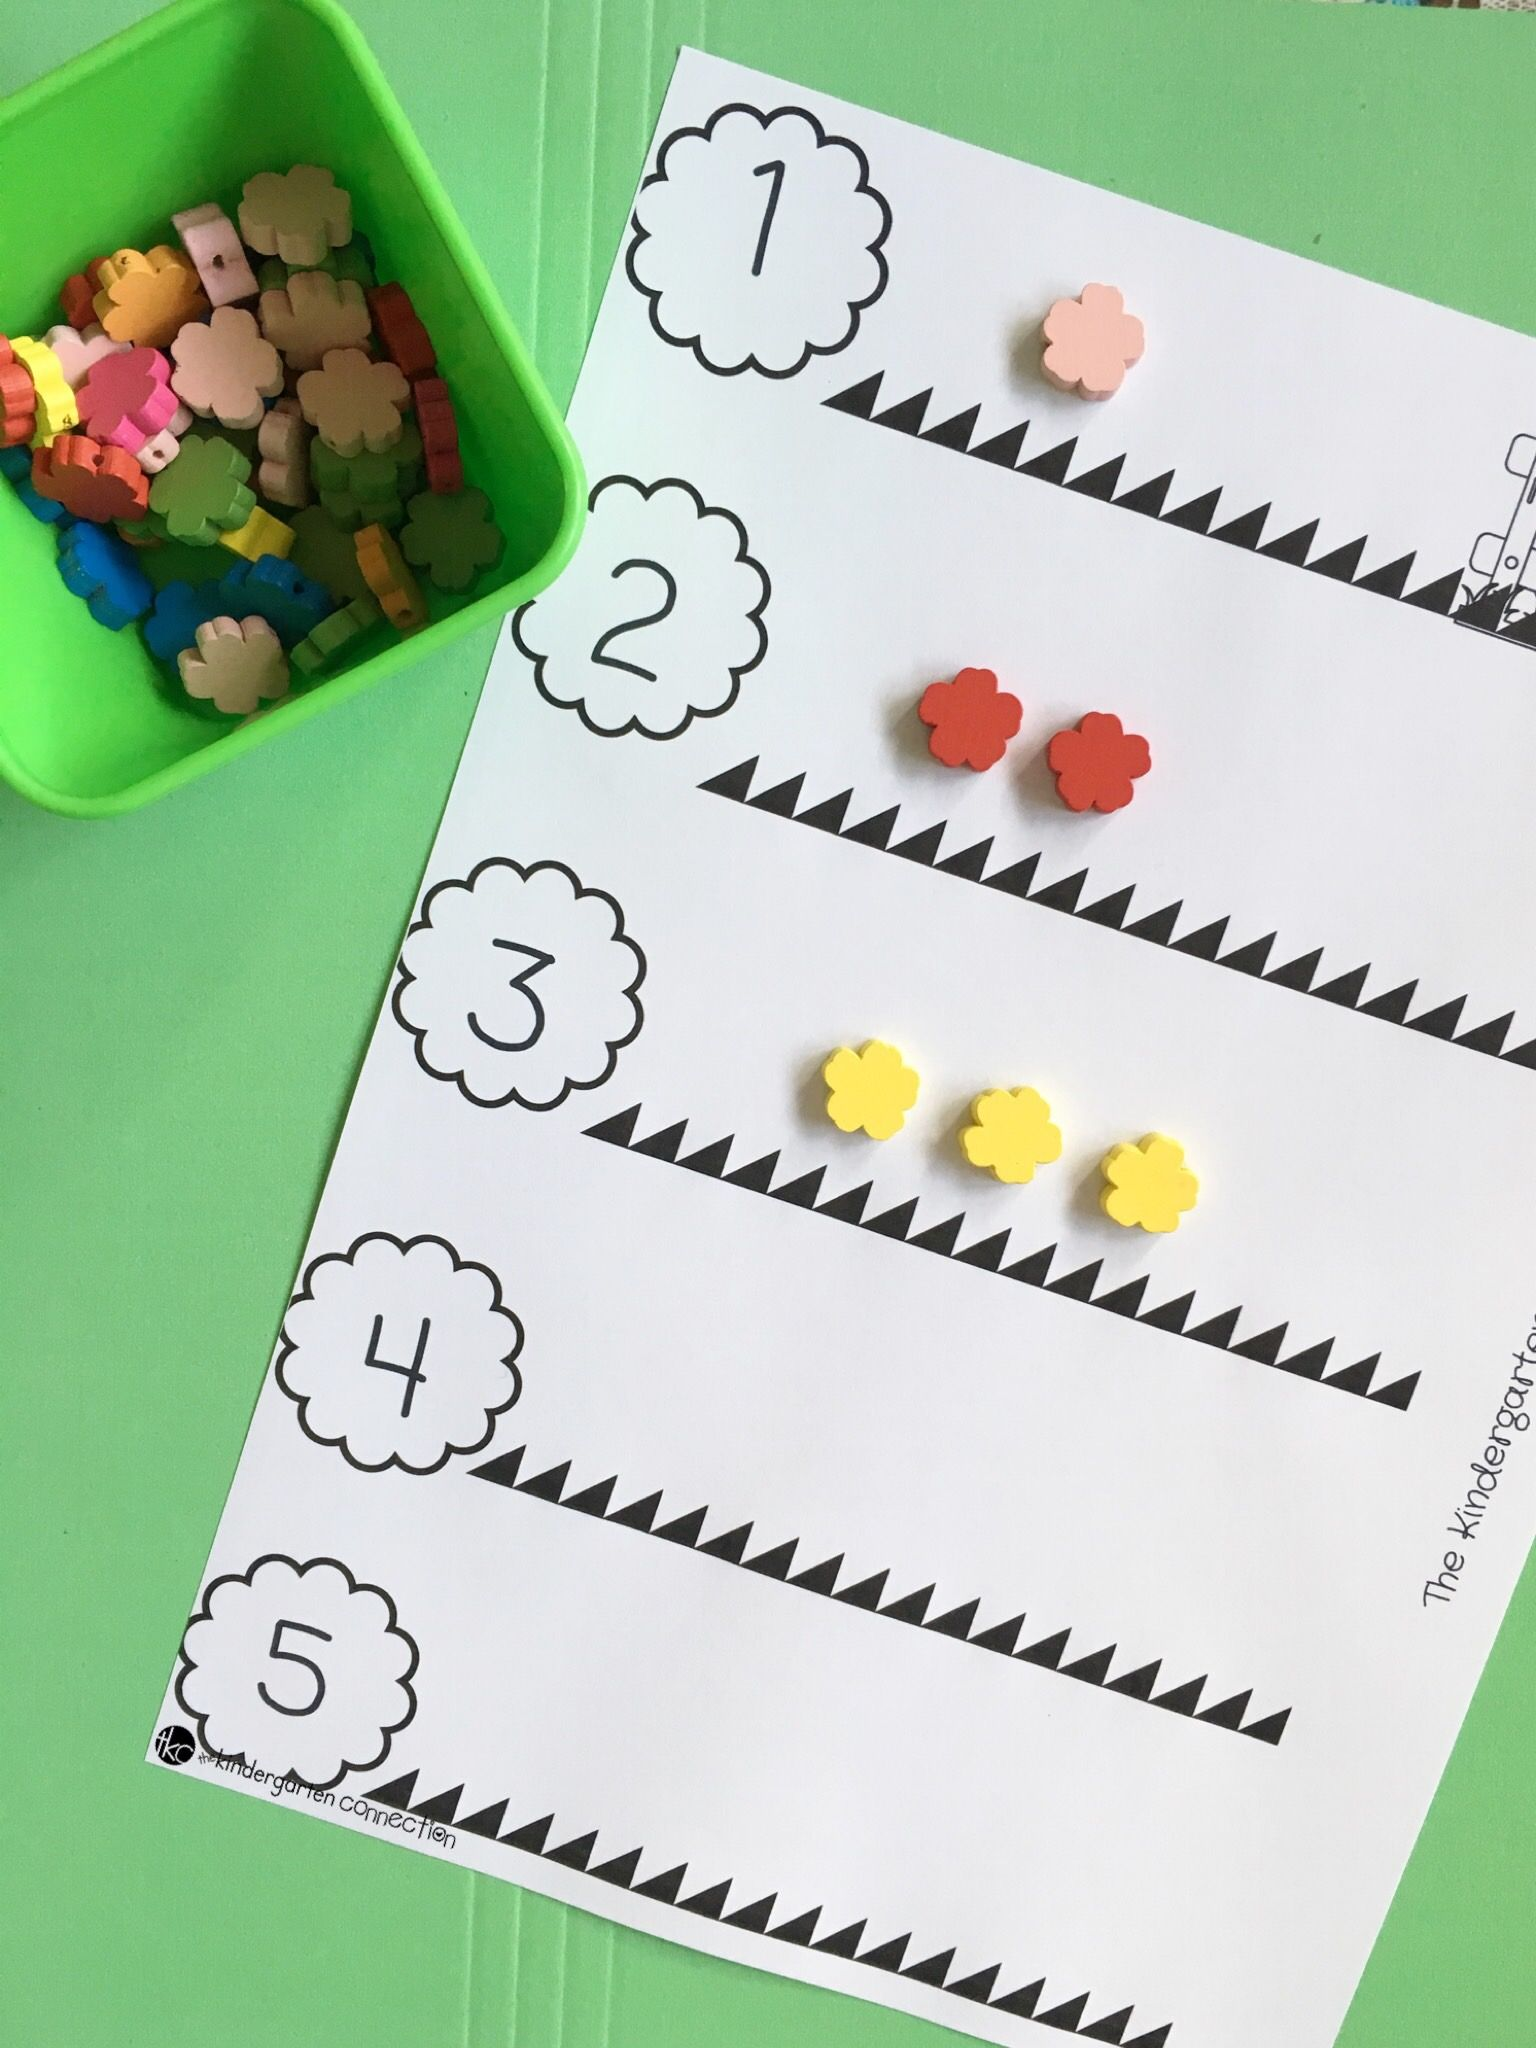 Flower Counting Activity In